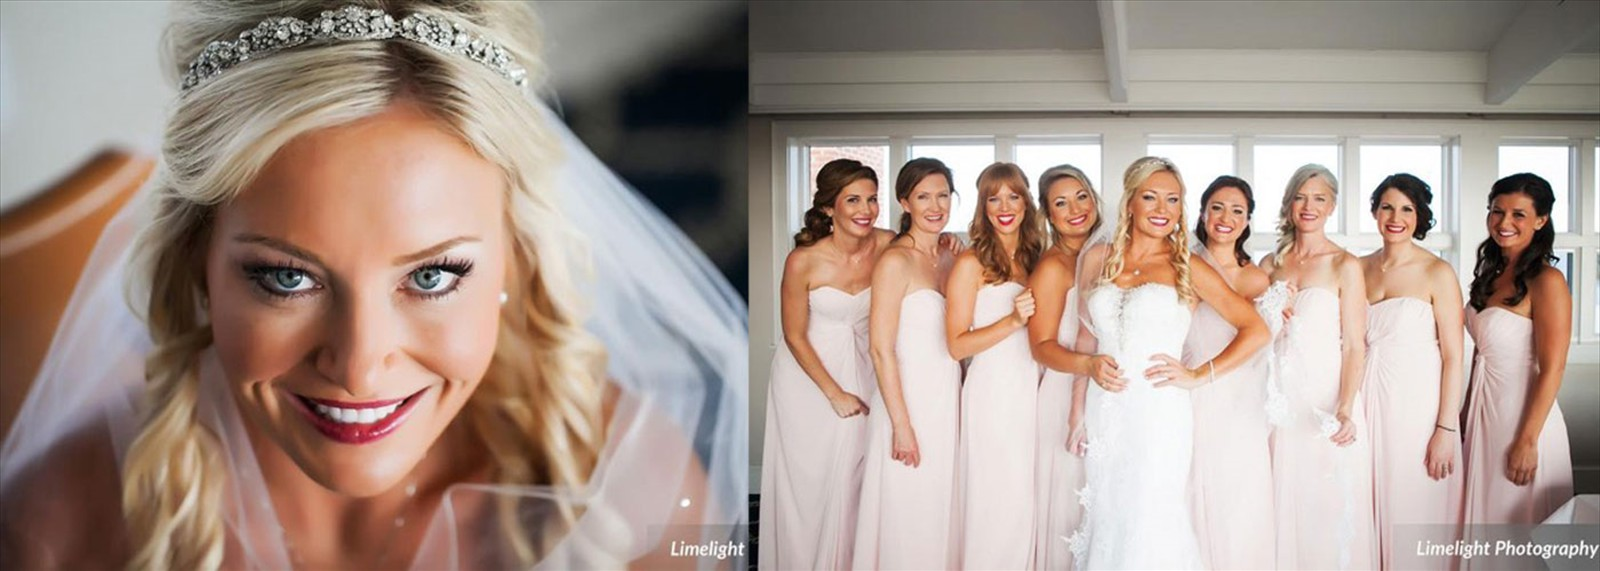 Maine Airbrush Wedding Makeup And Hair : Bridal Makeup Artist Tampa Mobile Hair Stylist and ...